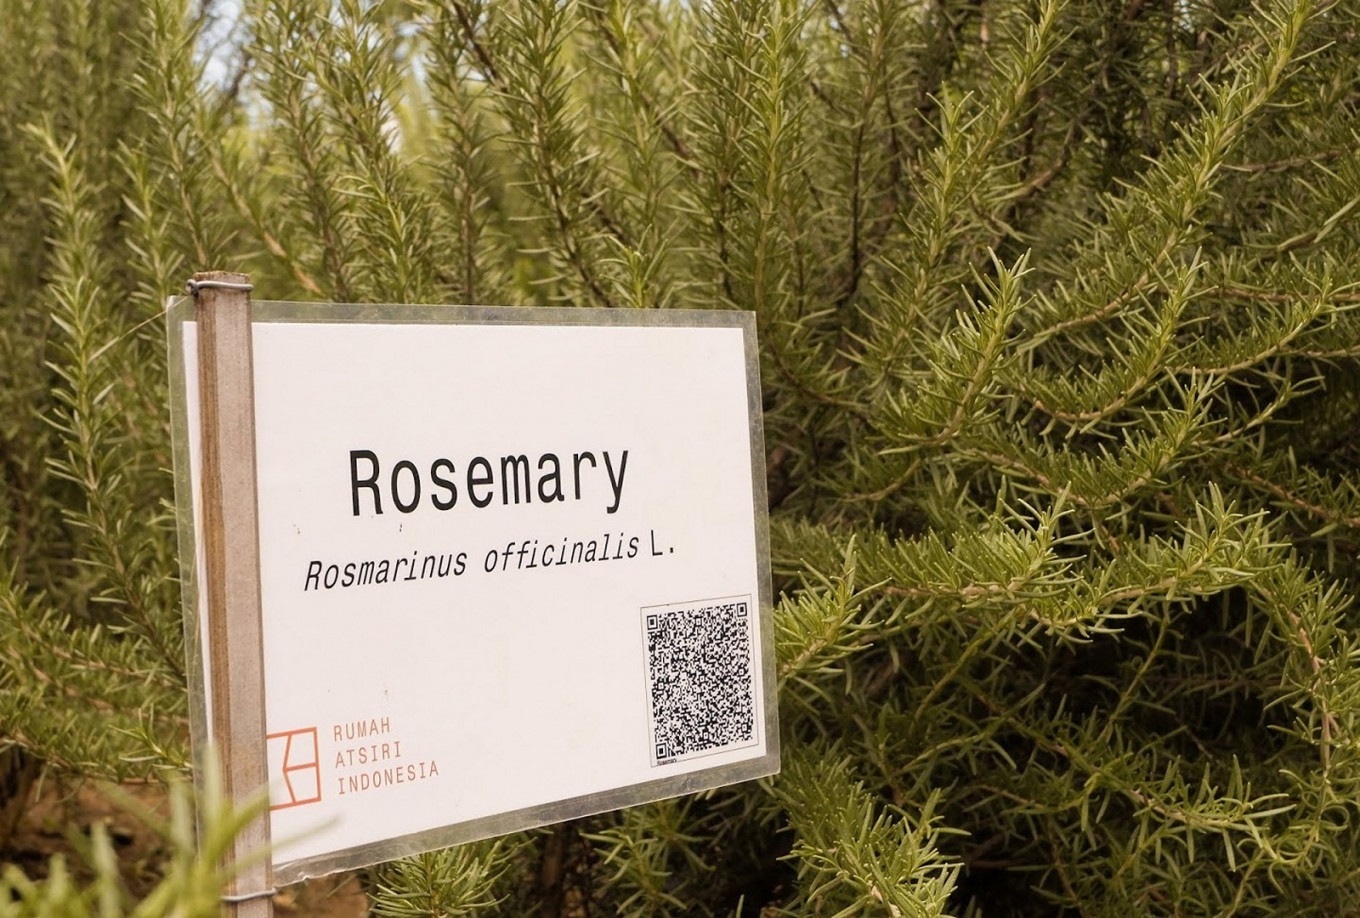 Rosemary plants in the Marigold Plaza